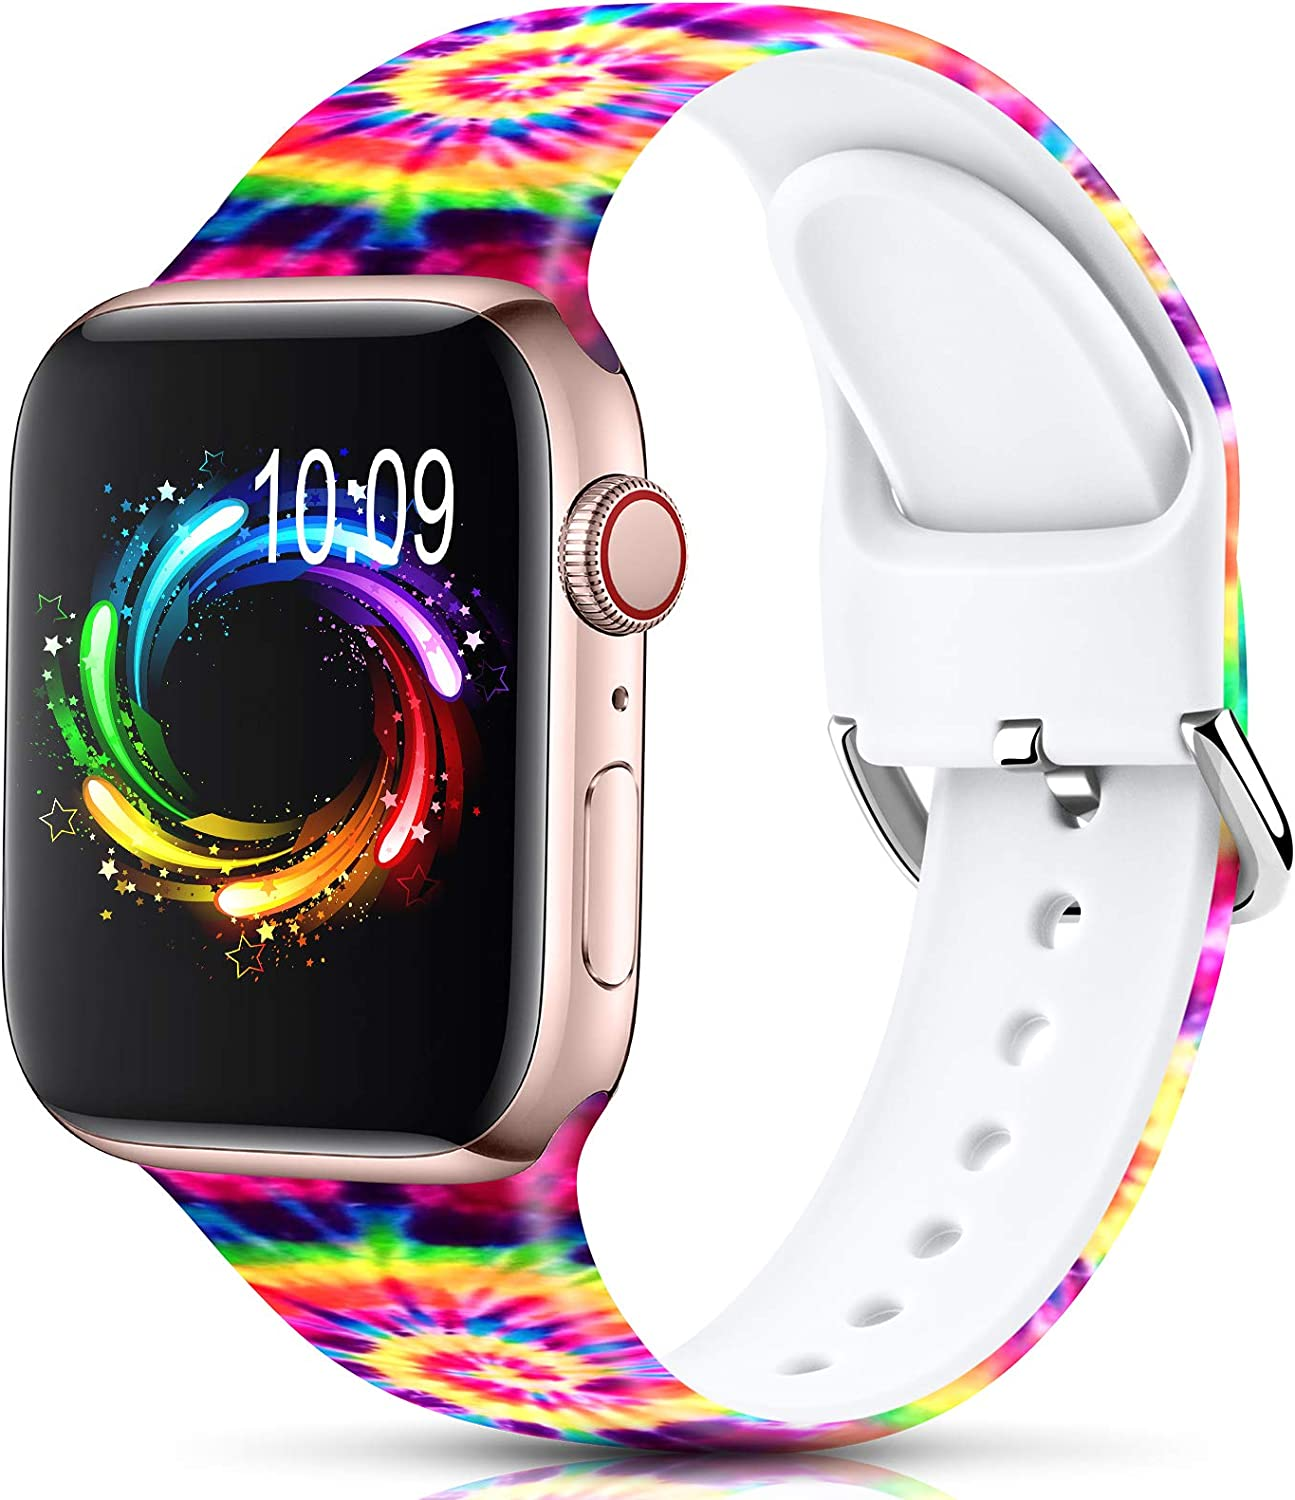 Sport Band Compatible with Apple Watch Bands 38mm 40mm 42mm 44mm for Women Men,Floral Silicone Printed Fadeless Pattern Replacement Strap Band for iWatch Series 3 6 5 4 2 1 SE,Rainbow,38/40 mm M/L